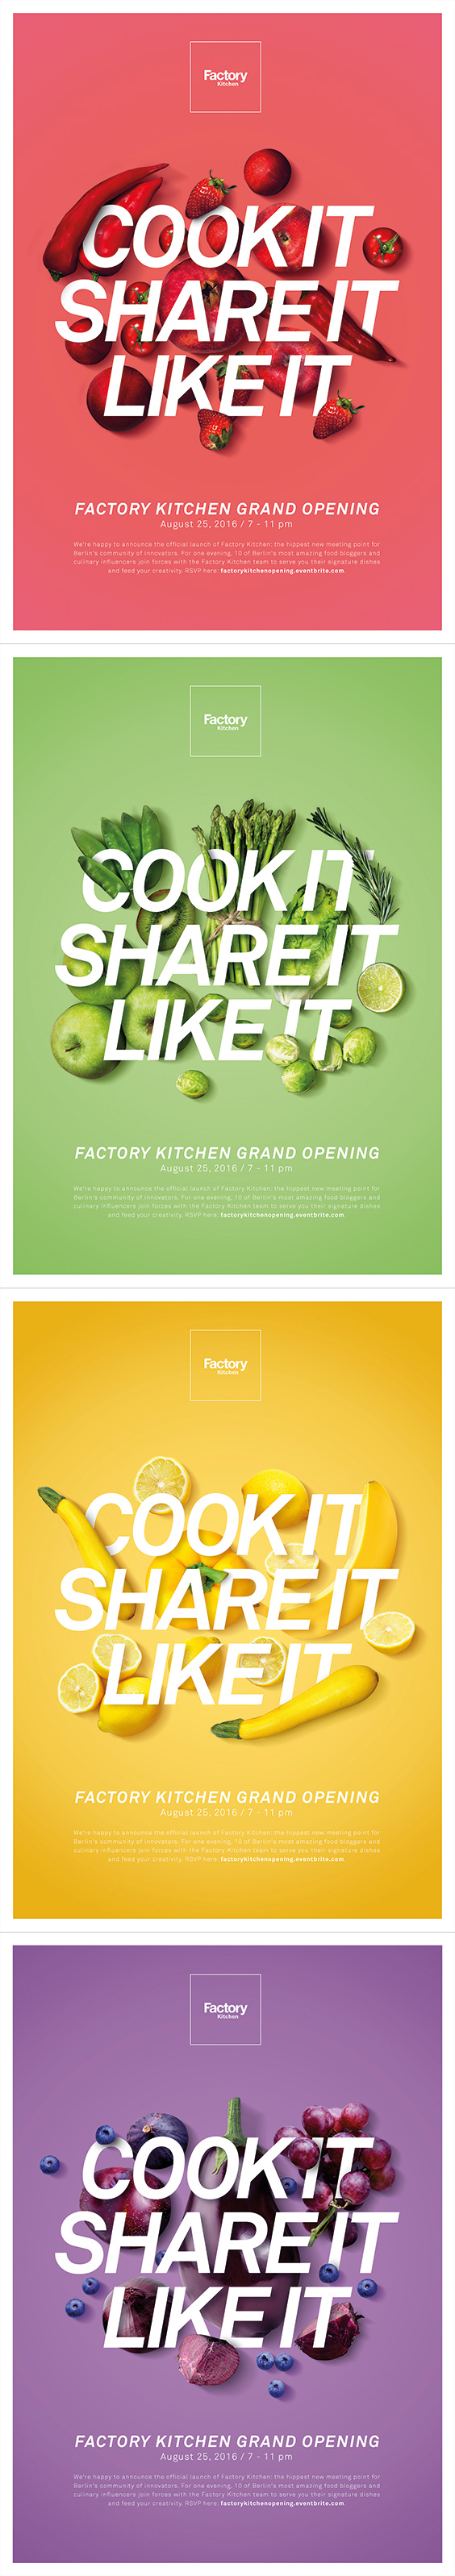 Factory Kitchen Grand Opening Posters | Factory Kitchen ...